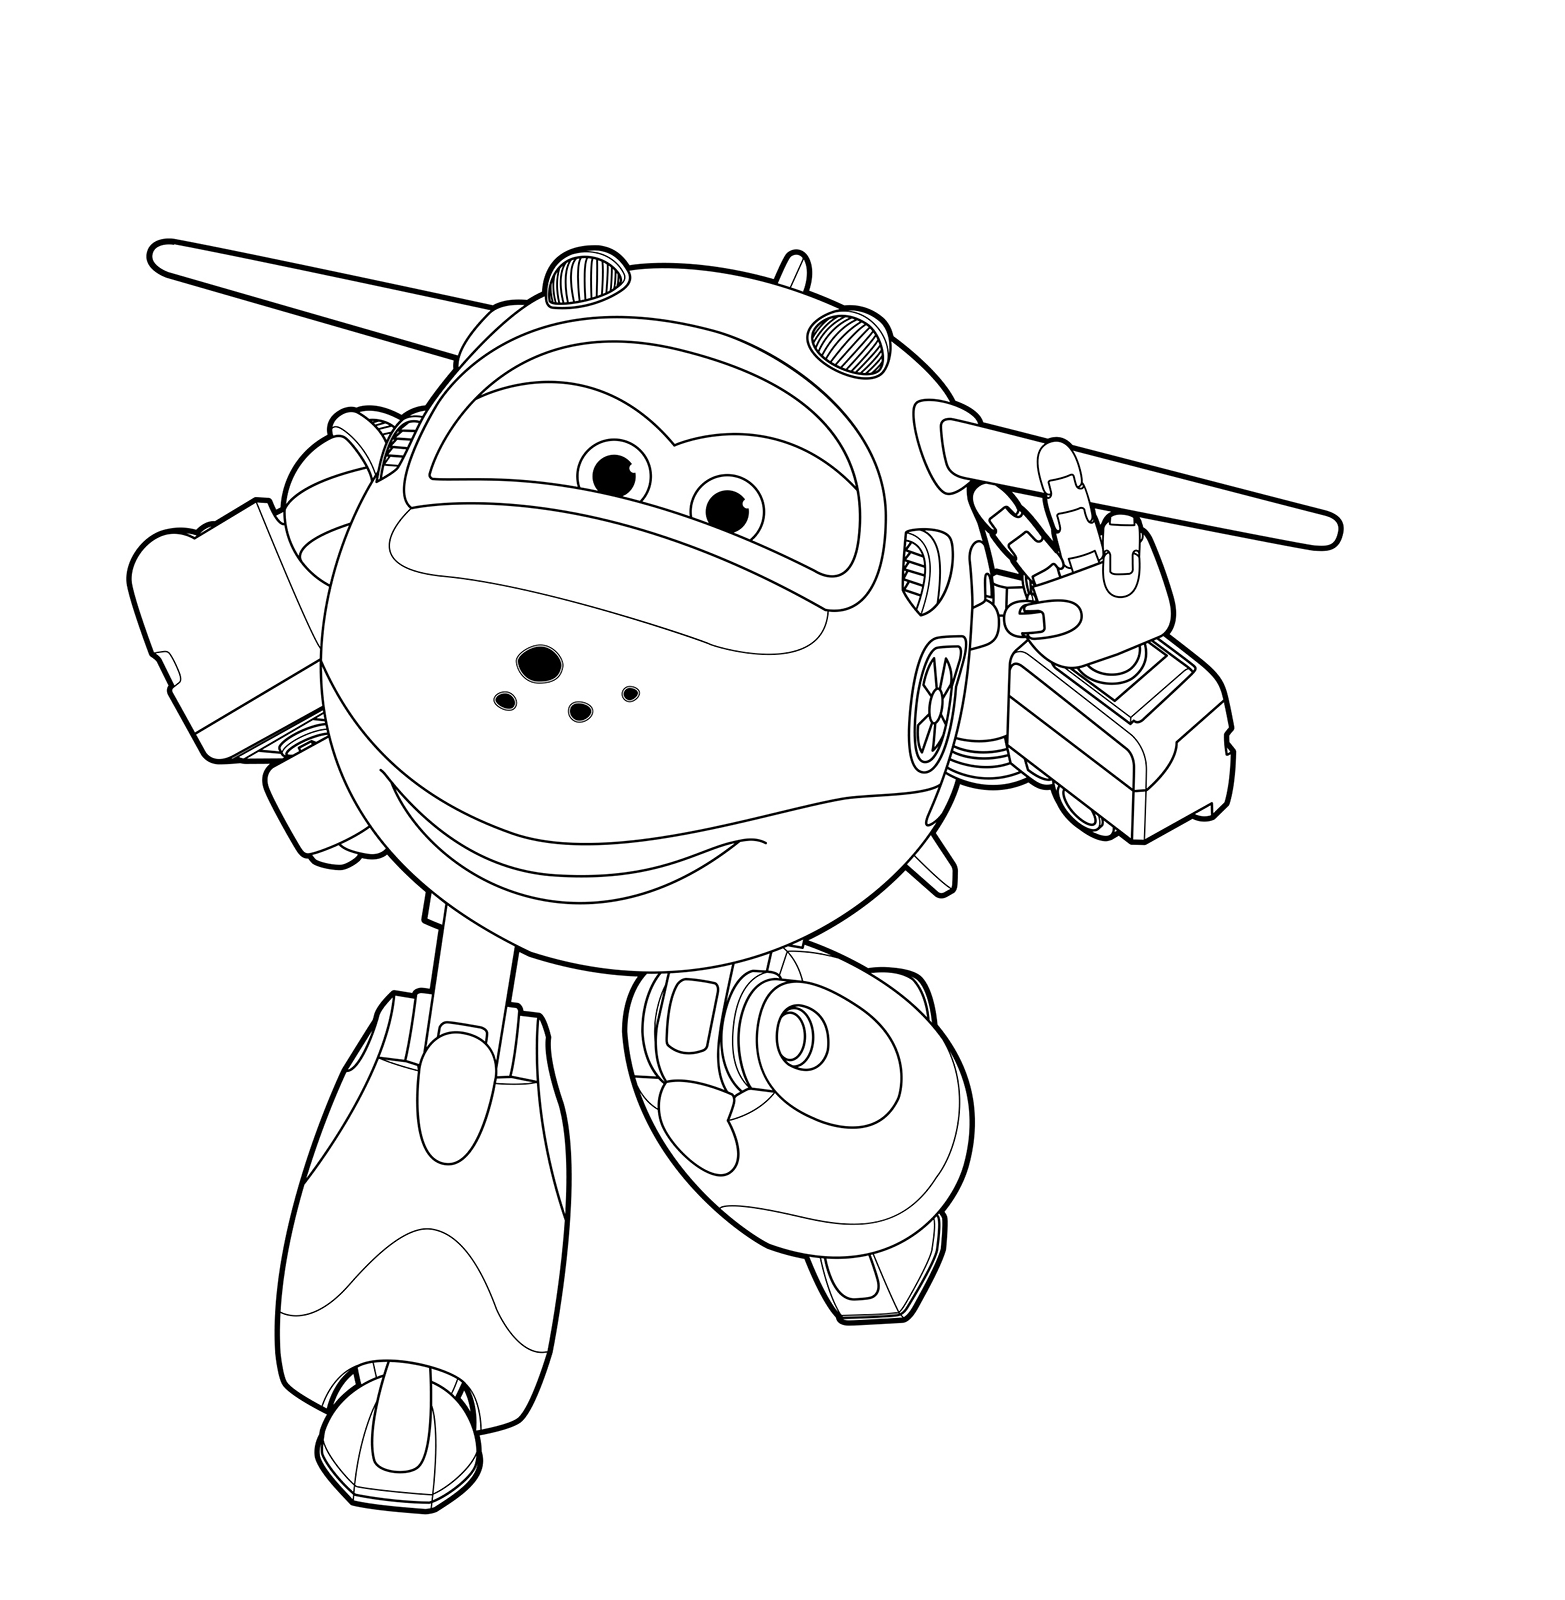 Super Wings Mira The Airplane Which May Fall Into The Abyss Aeroplane Colouring Page